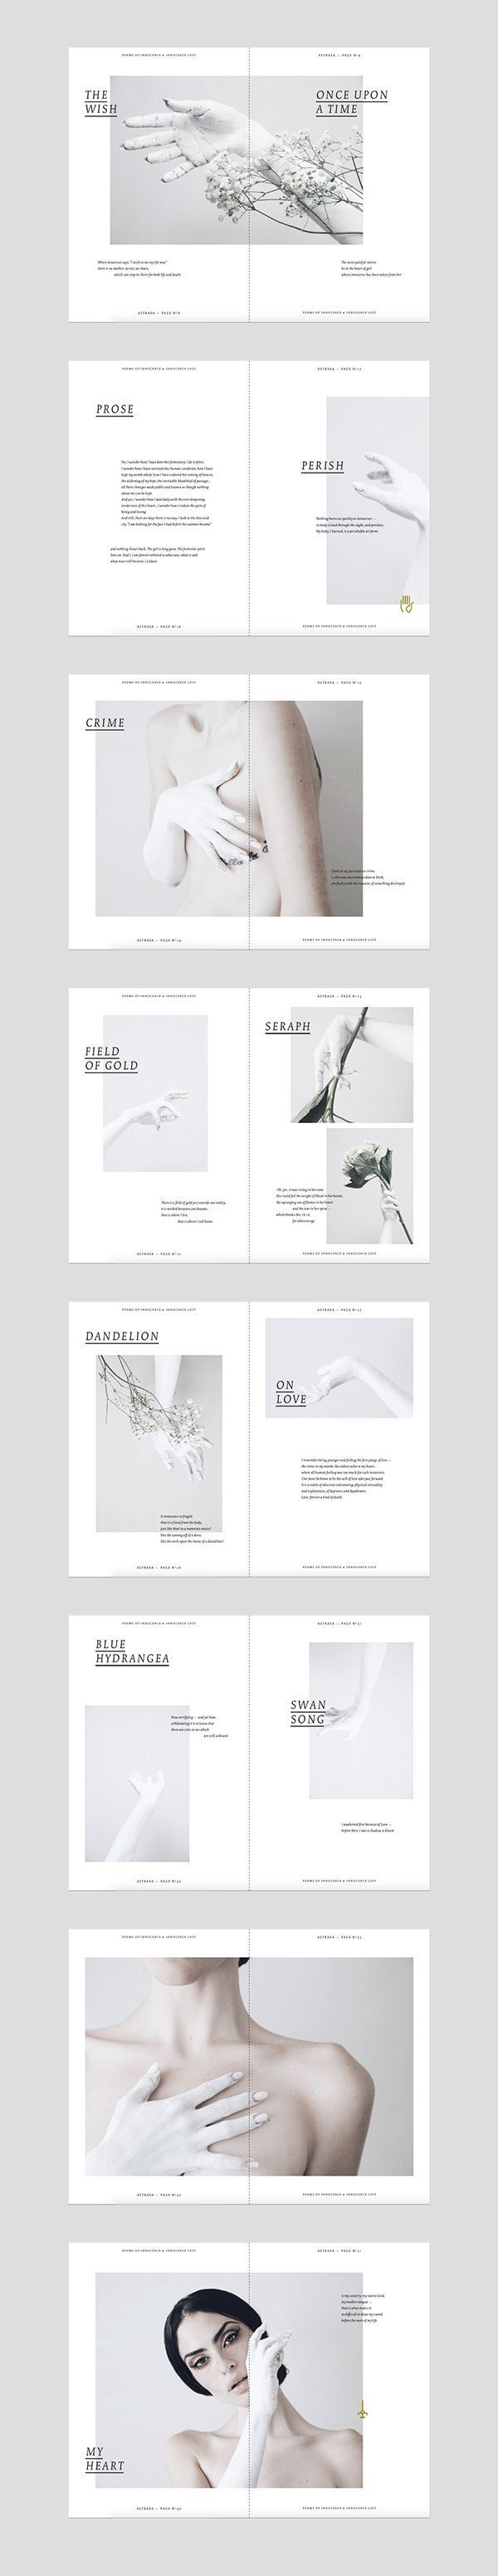 ASTRAEA on Editorial Design Served